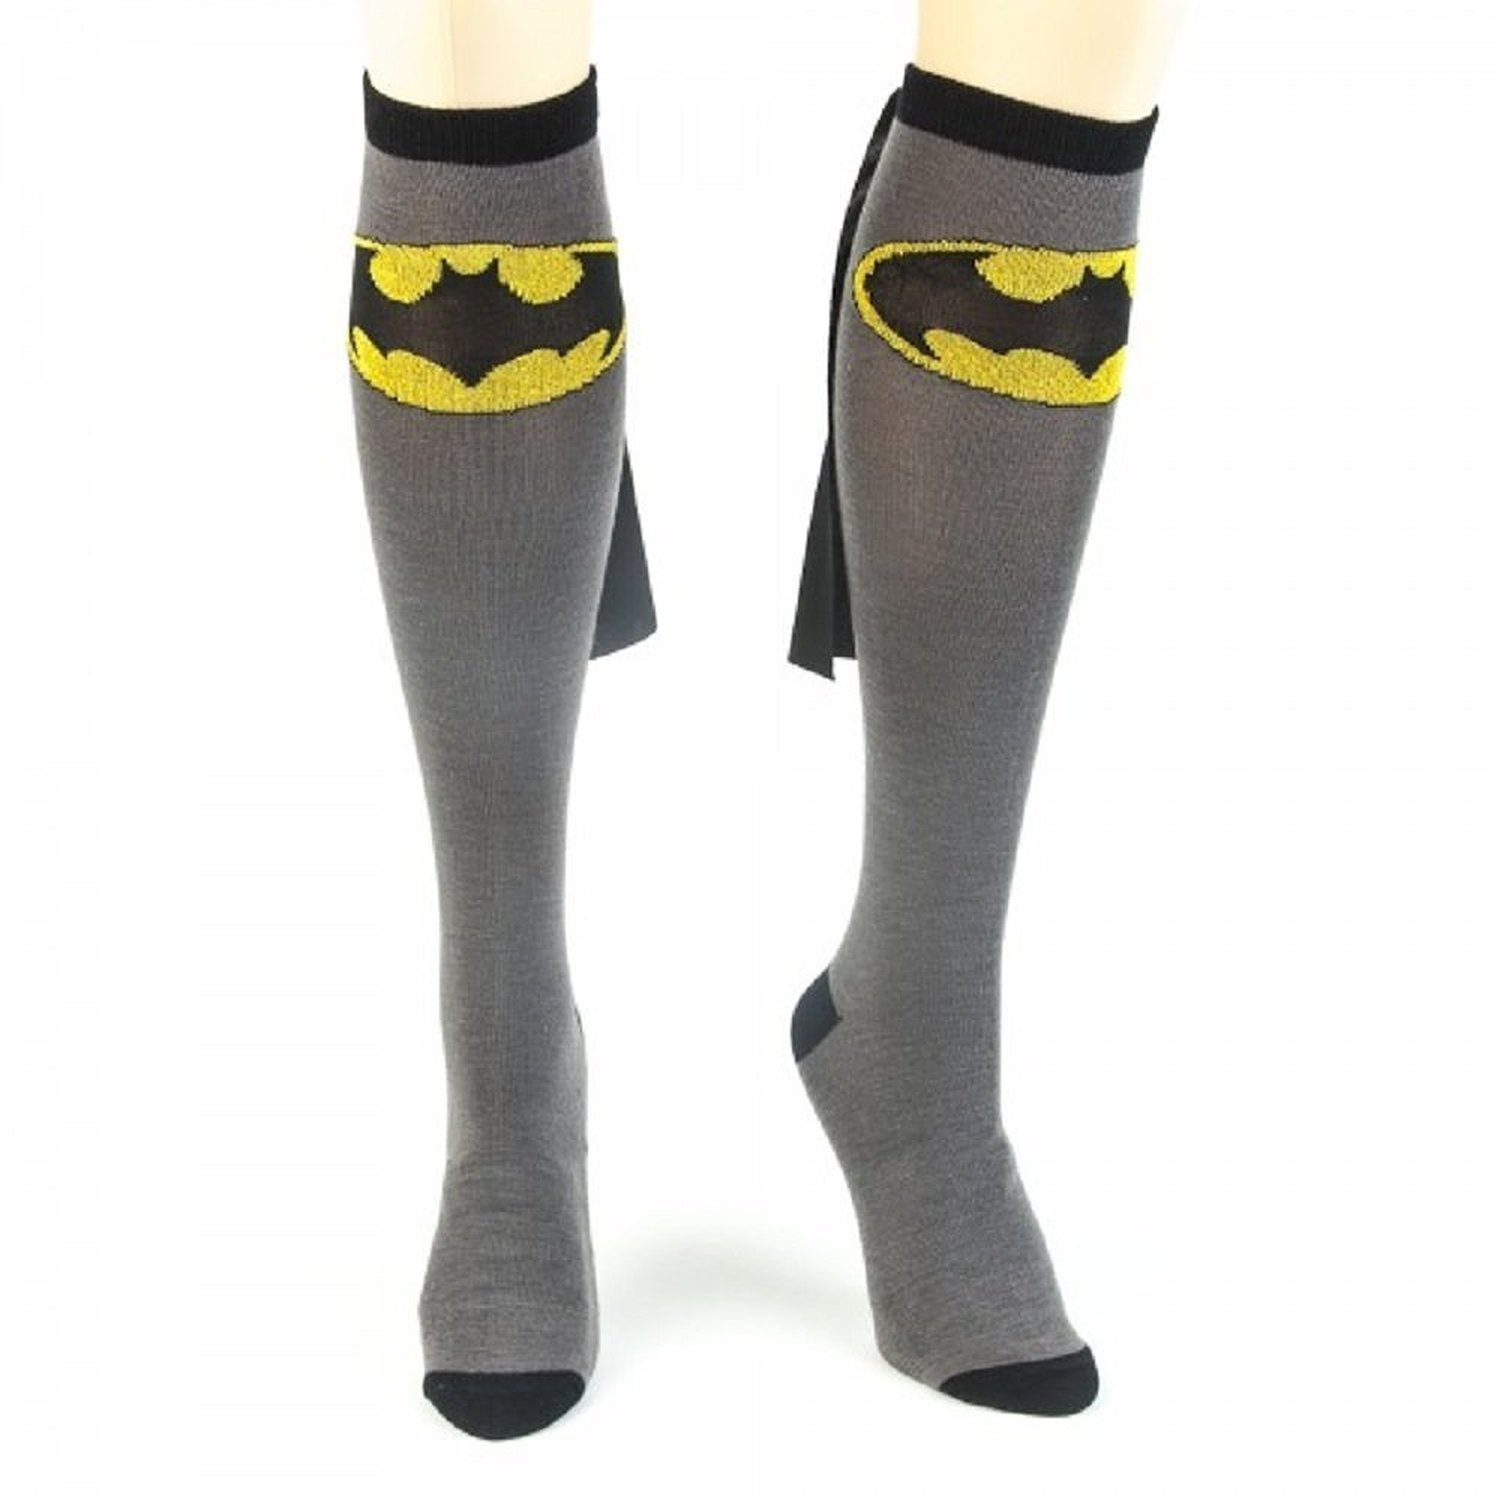 Amazon.com: batman cape knee high socks: clothing